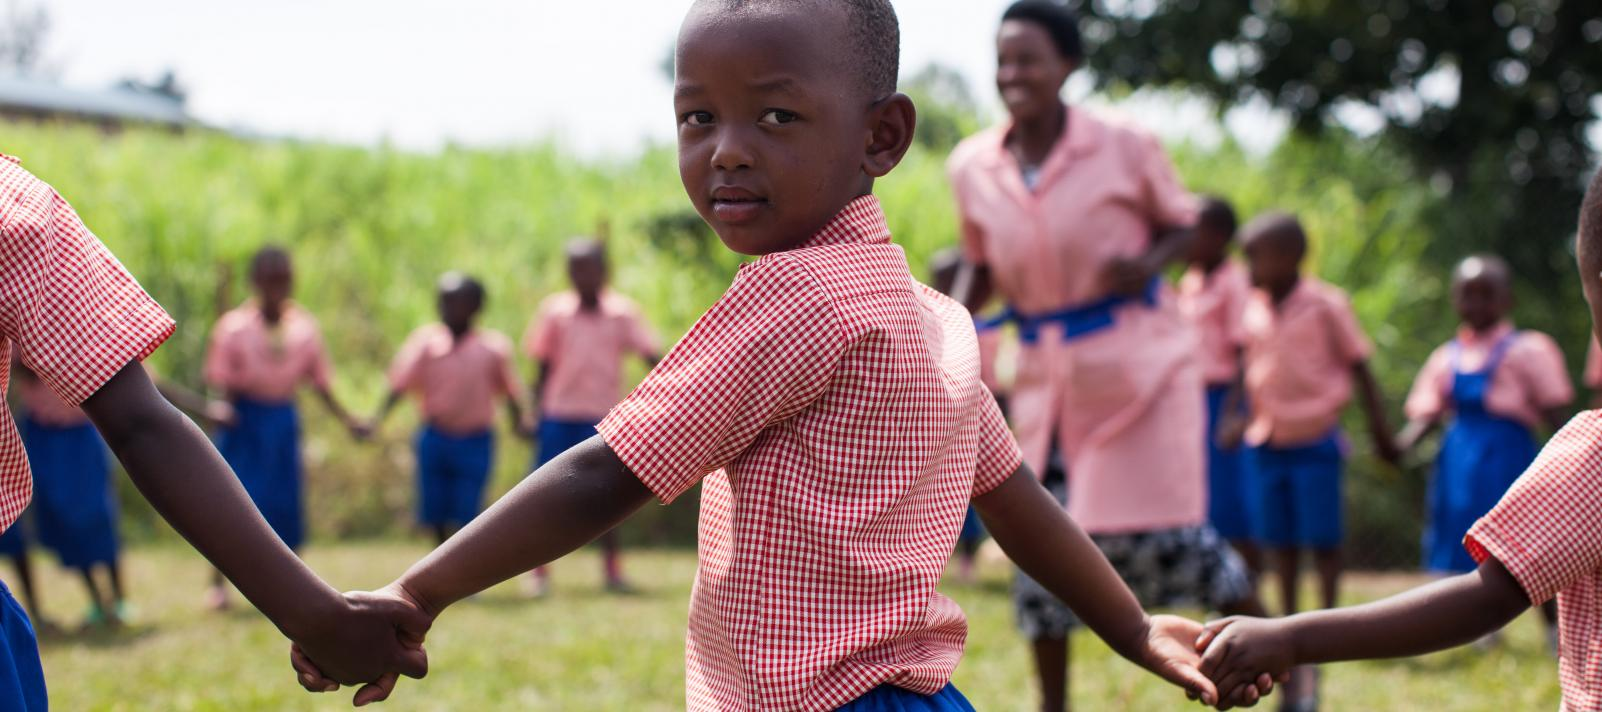 Preschool child in Rwanda holds hands with classmates